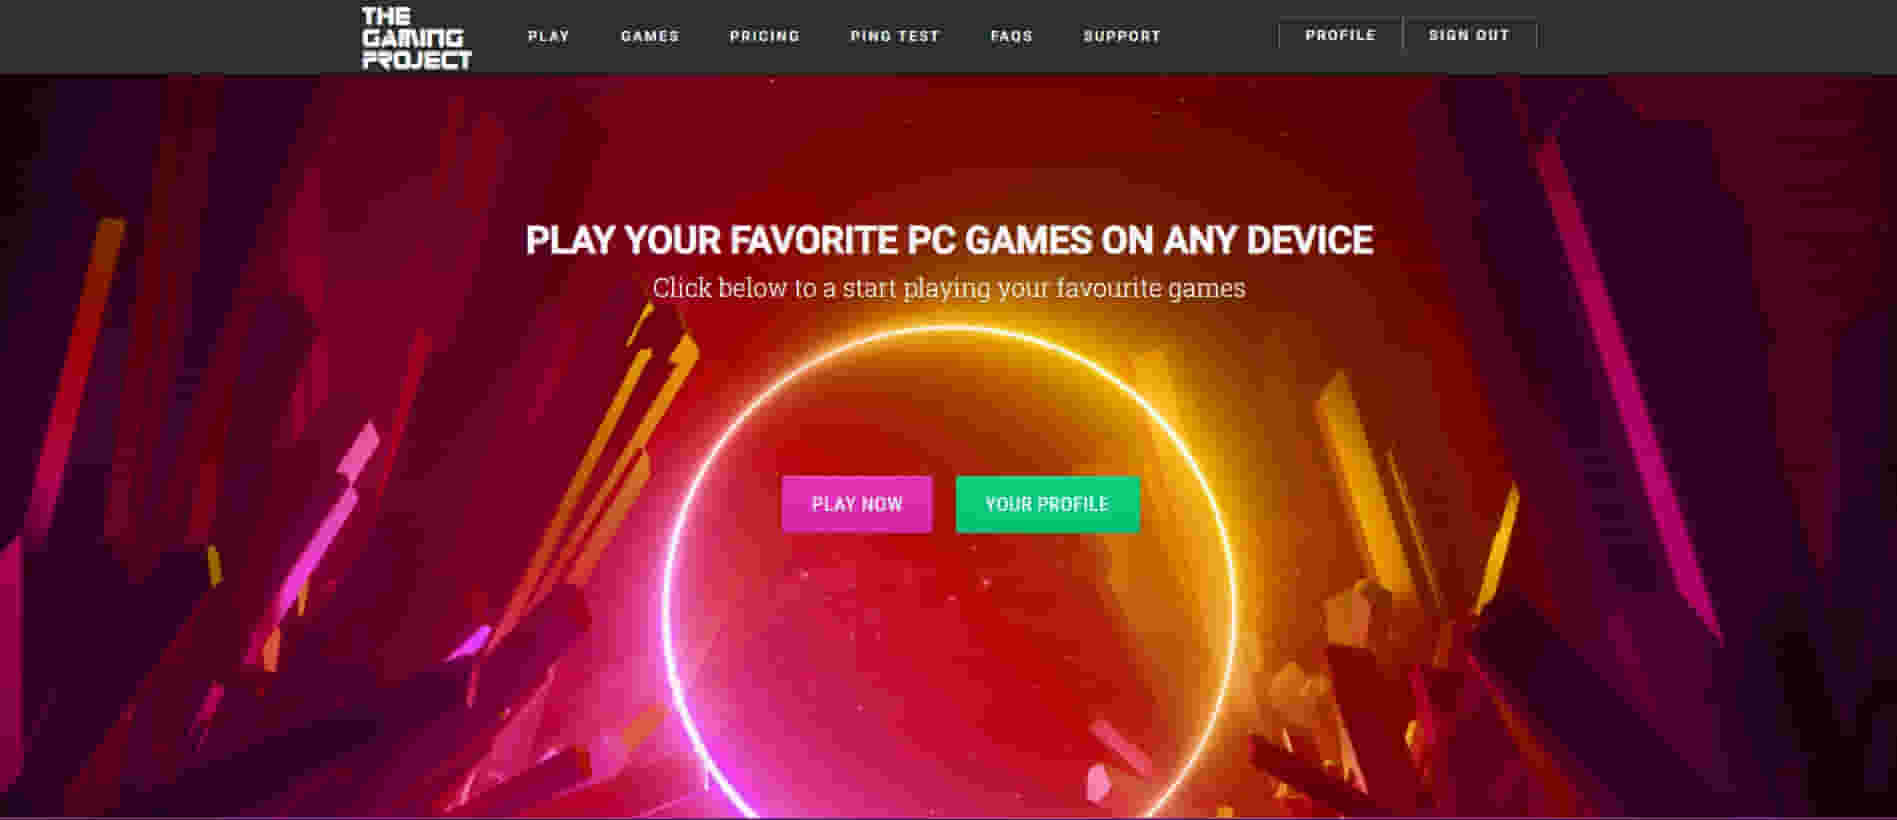 top cloud gaming services in india 2021, top cloud gaming services in inida, best cloud gaming services in india, cloud gaming in india, cloud gaming services, top cloud gaming services, what is cloud gaming, cloud gaming in india, how to use cloud gaming in india